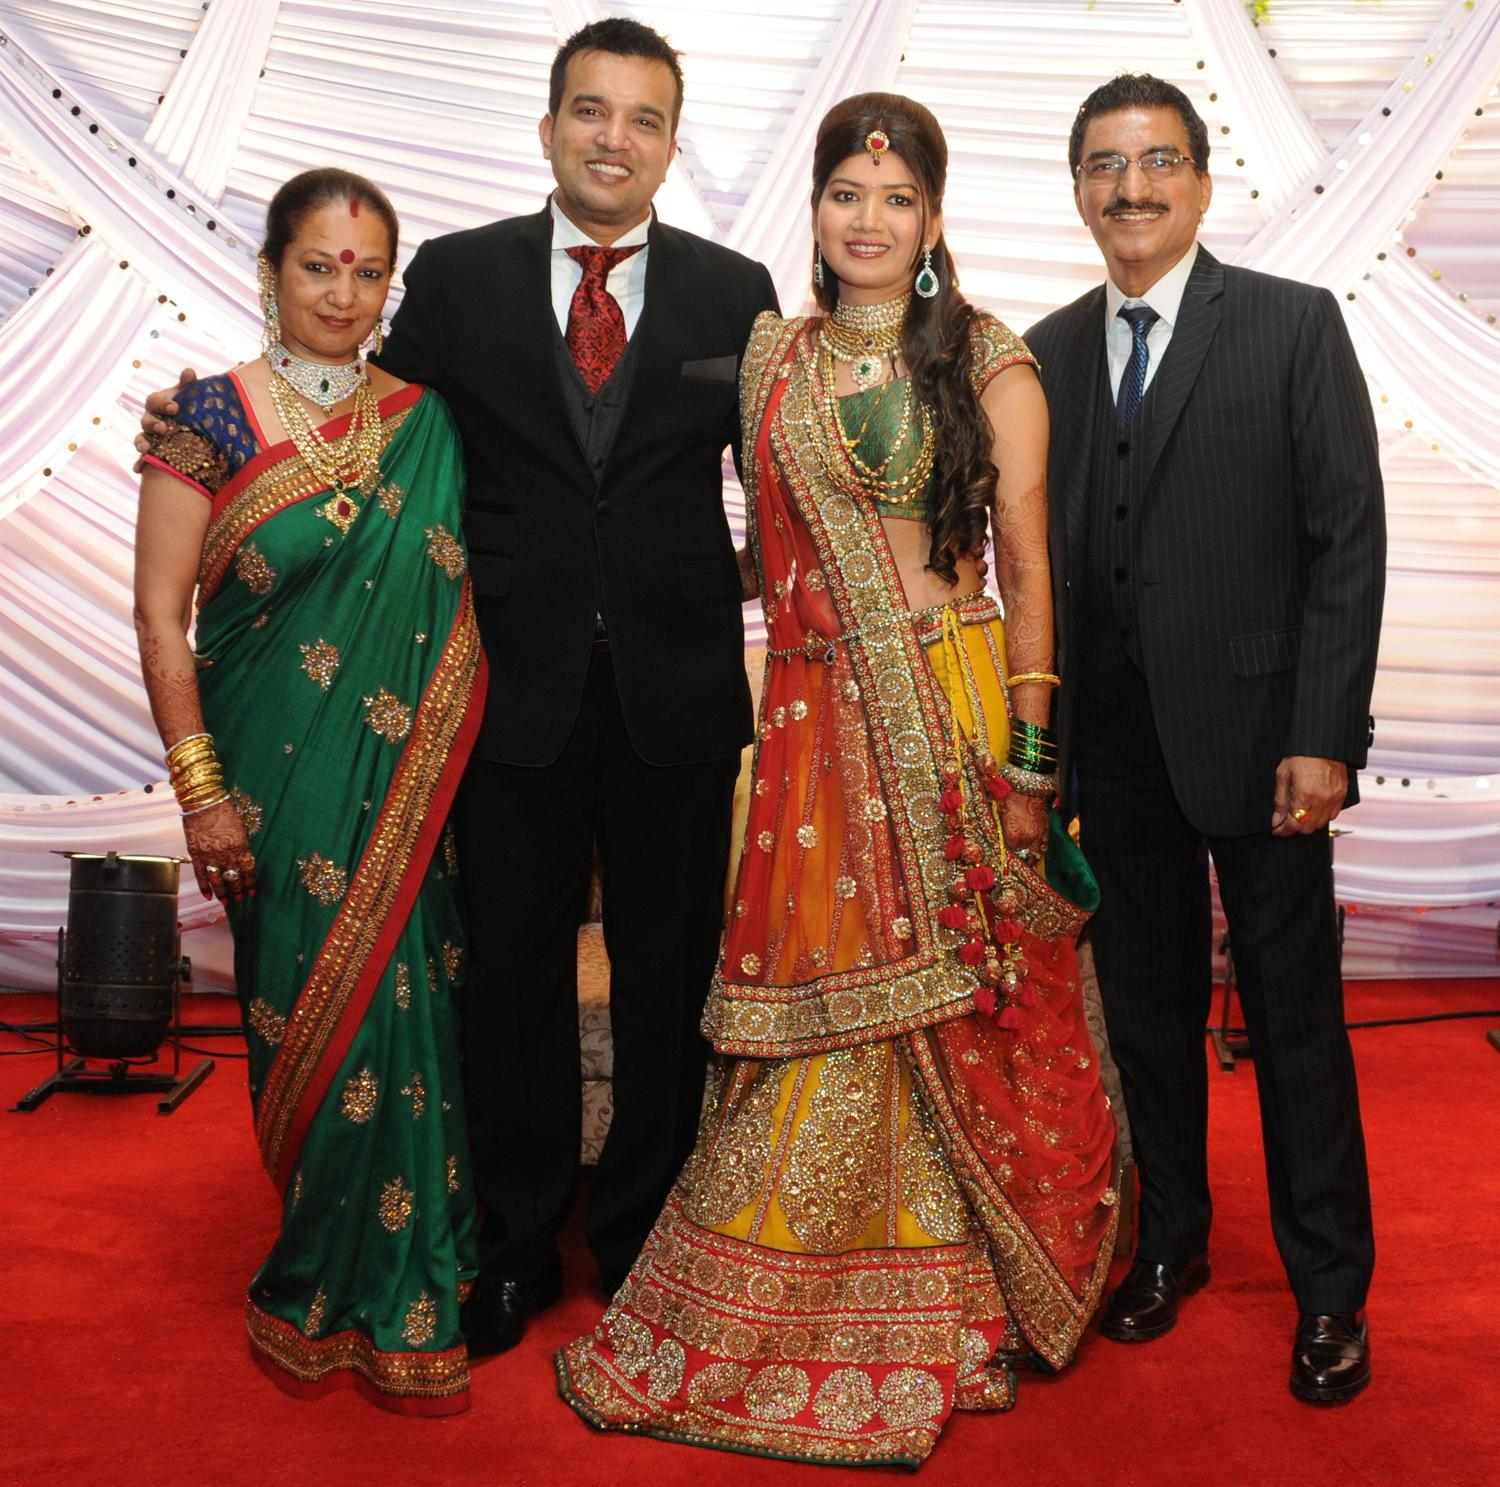 Wedding Poses With Parents: Suraj Godambe Posing With His Wife And Parents Bharat And